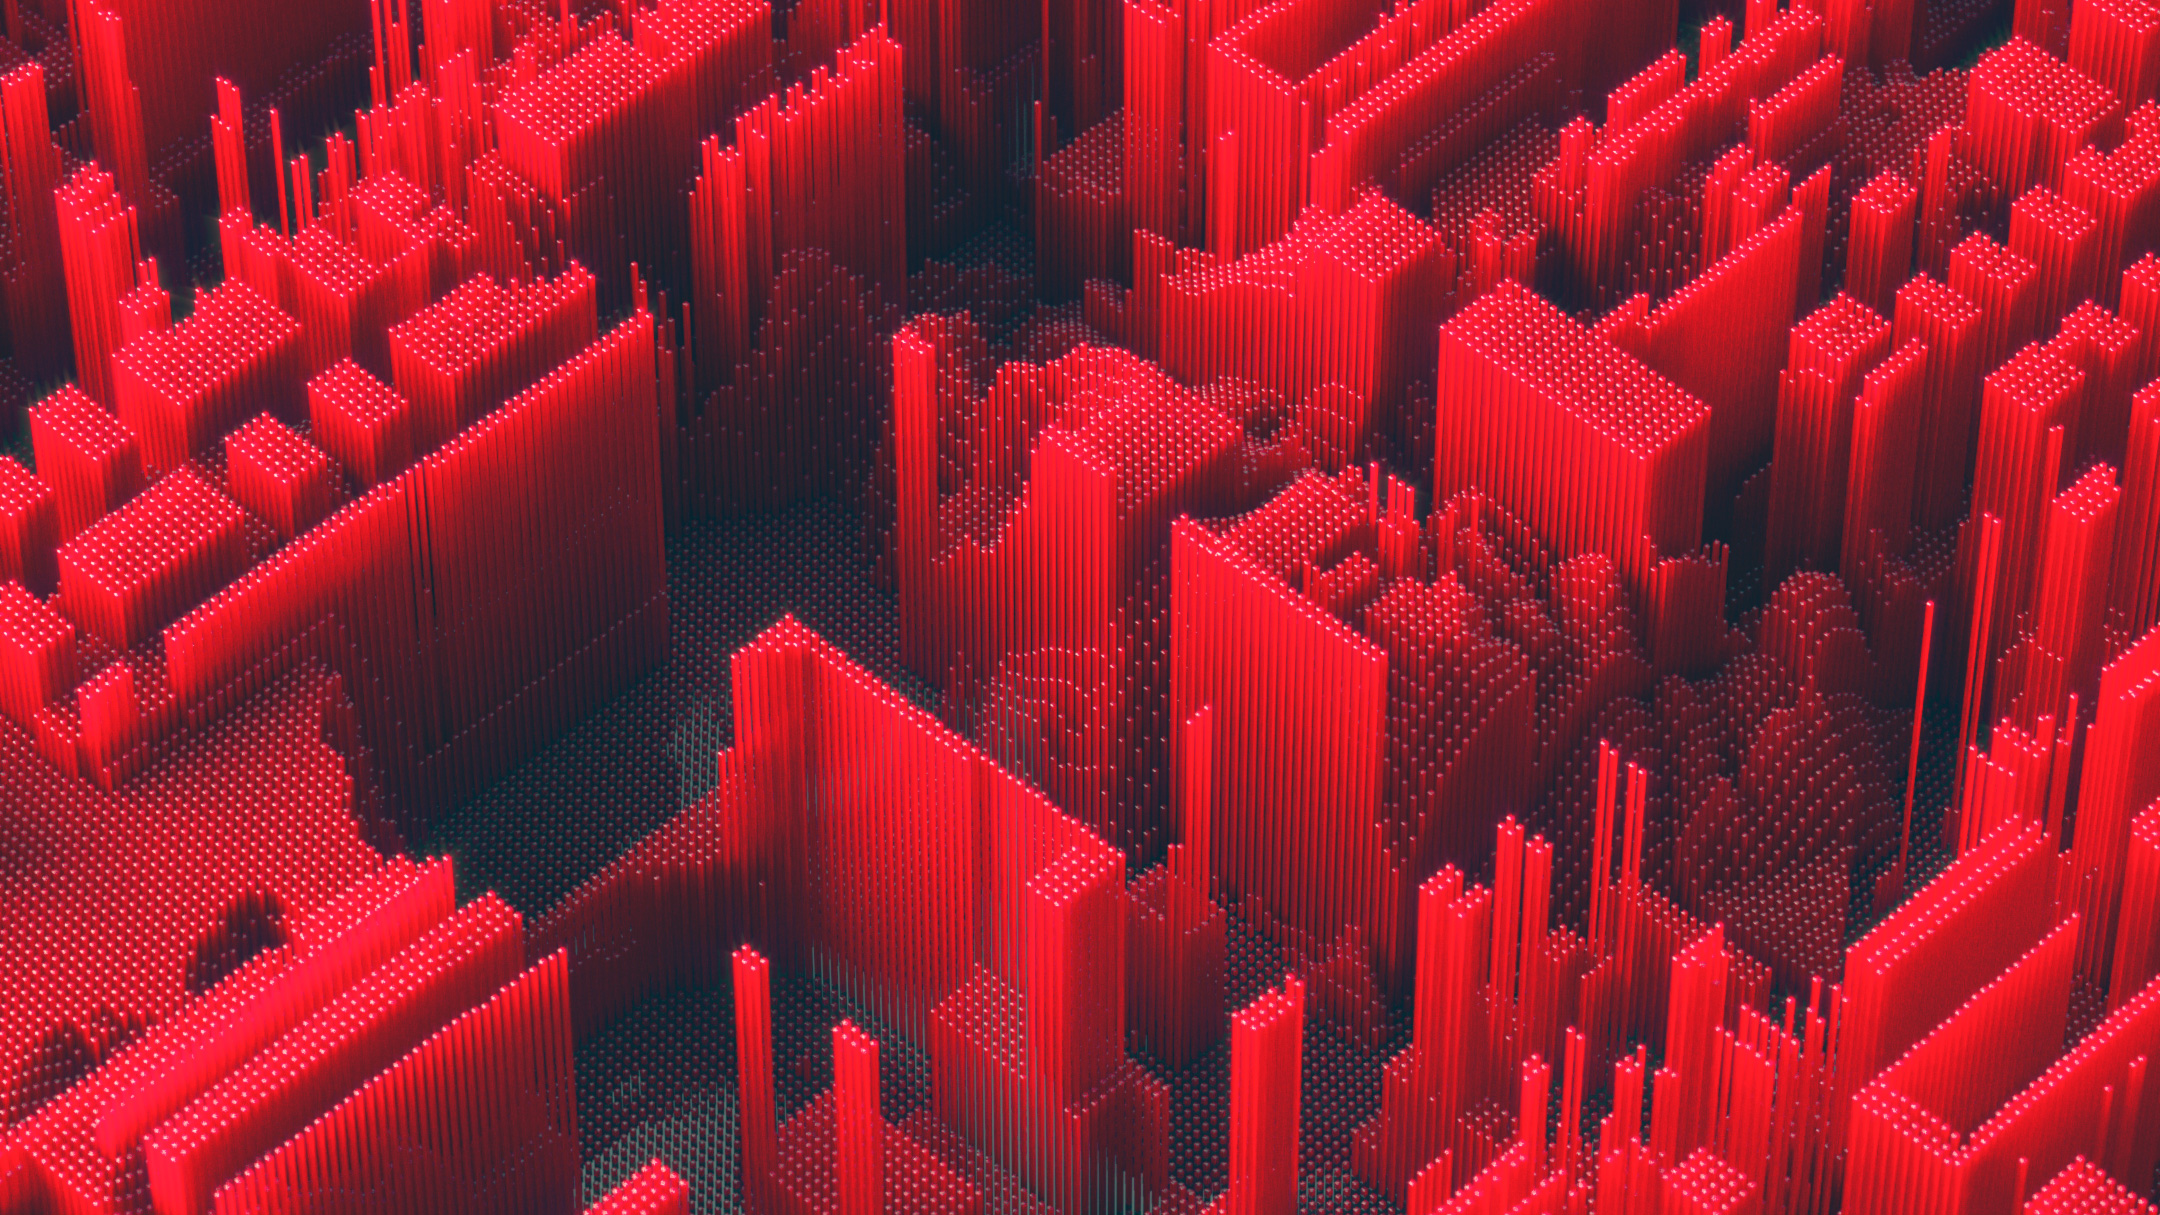 Red Abstract Geometry Hd Abstract 4k Wallpapers Images